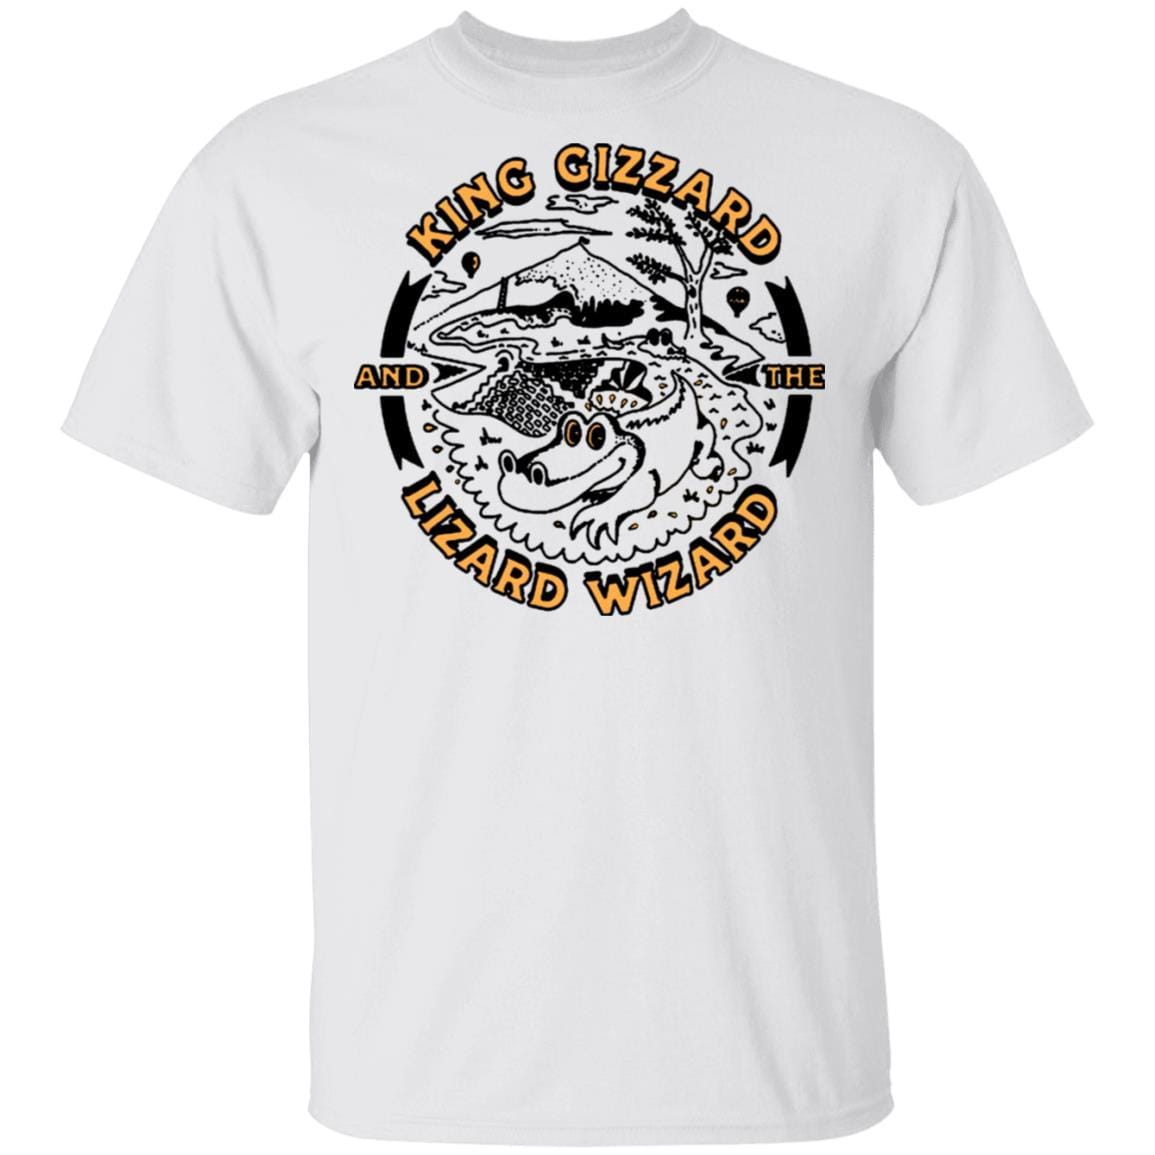 King Gizzard And The Lizard Wizard Gators Vintage T-Shirts, Hoodies 1049-9974-88477983-48300 - Tee Ript